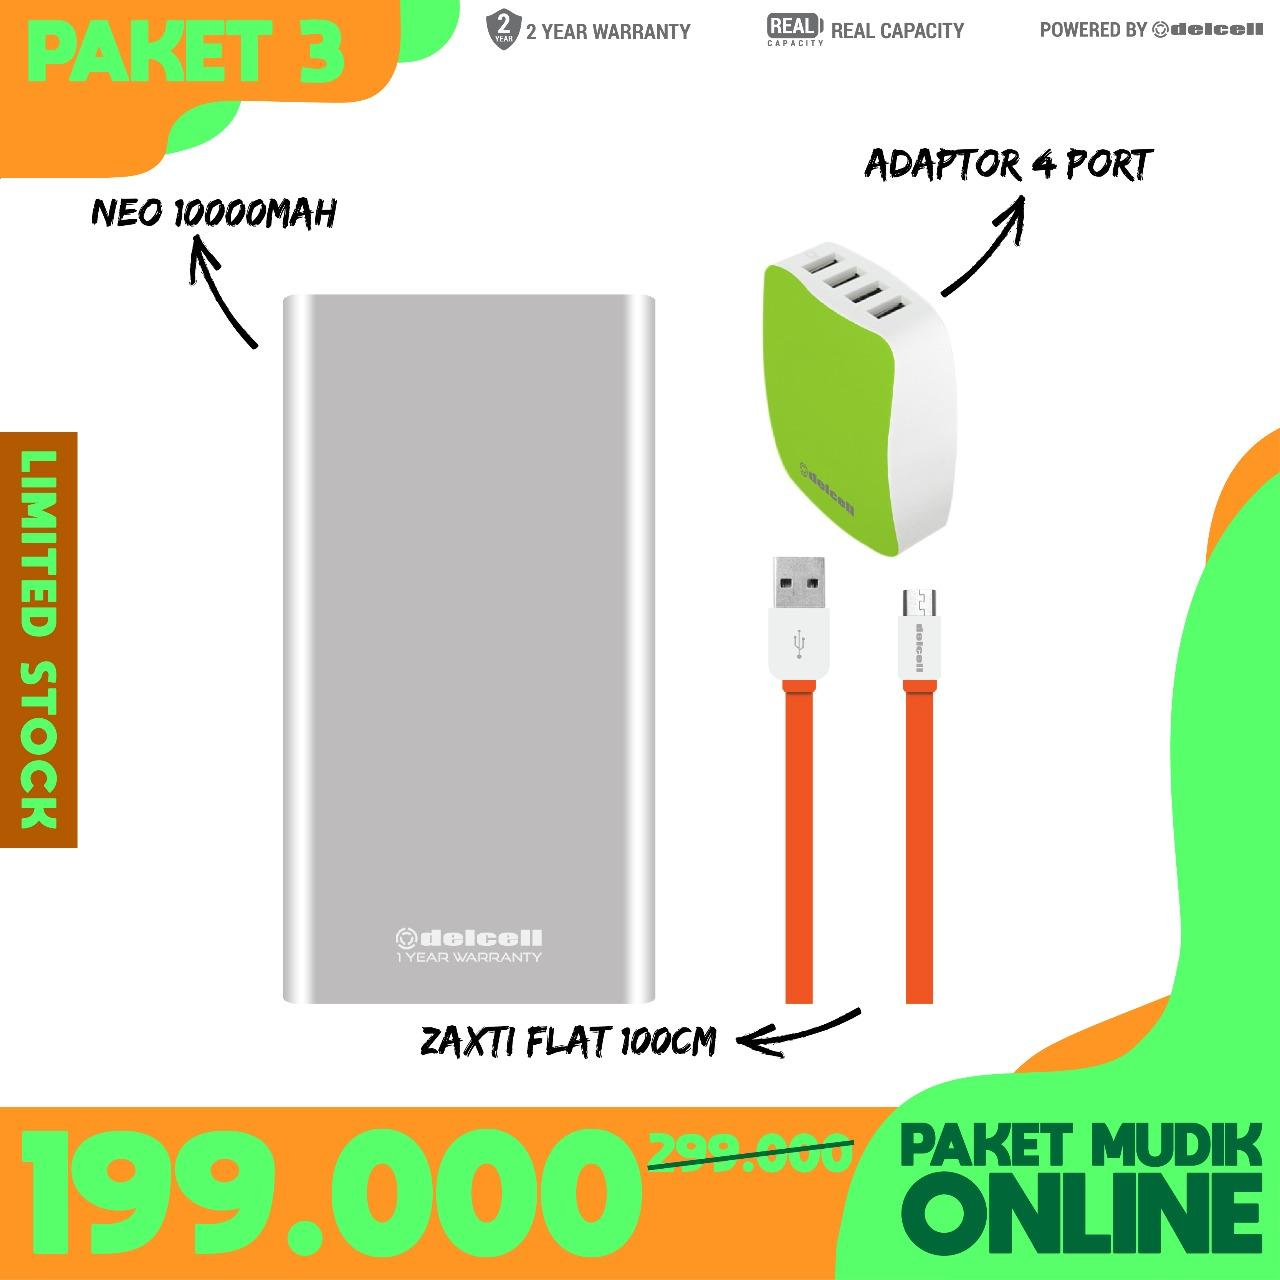 PAKET MUDIK 3 - Delcell NEO Powerbank 10000mAh Free Delcell Adaptor Charger 4 Port 6A - Delcell Zaxti Cable Flat 100cm Random Colour